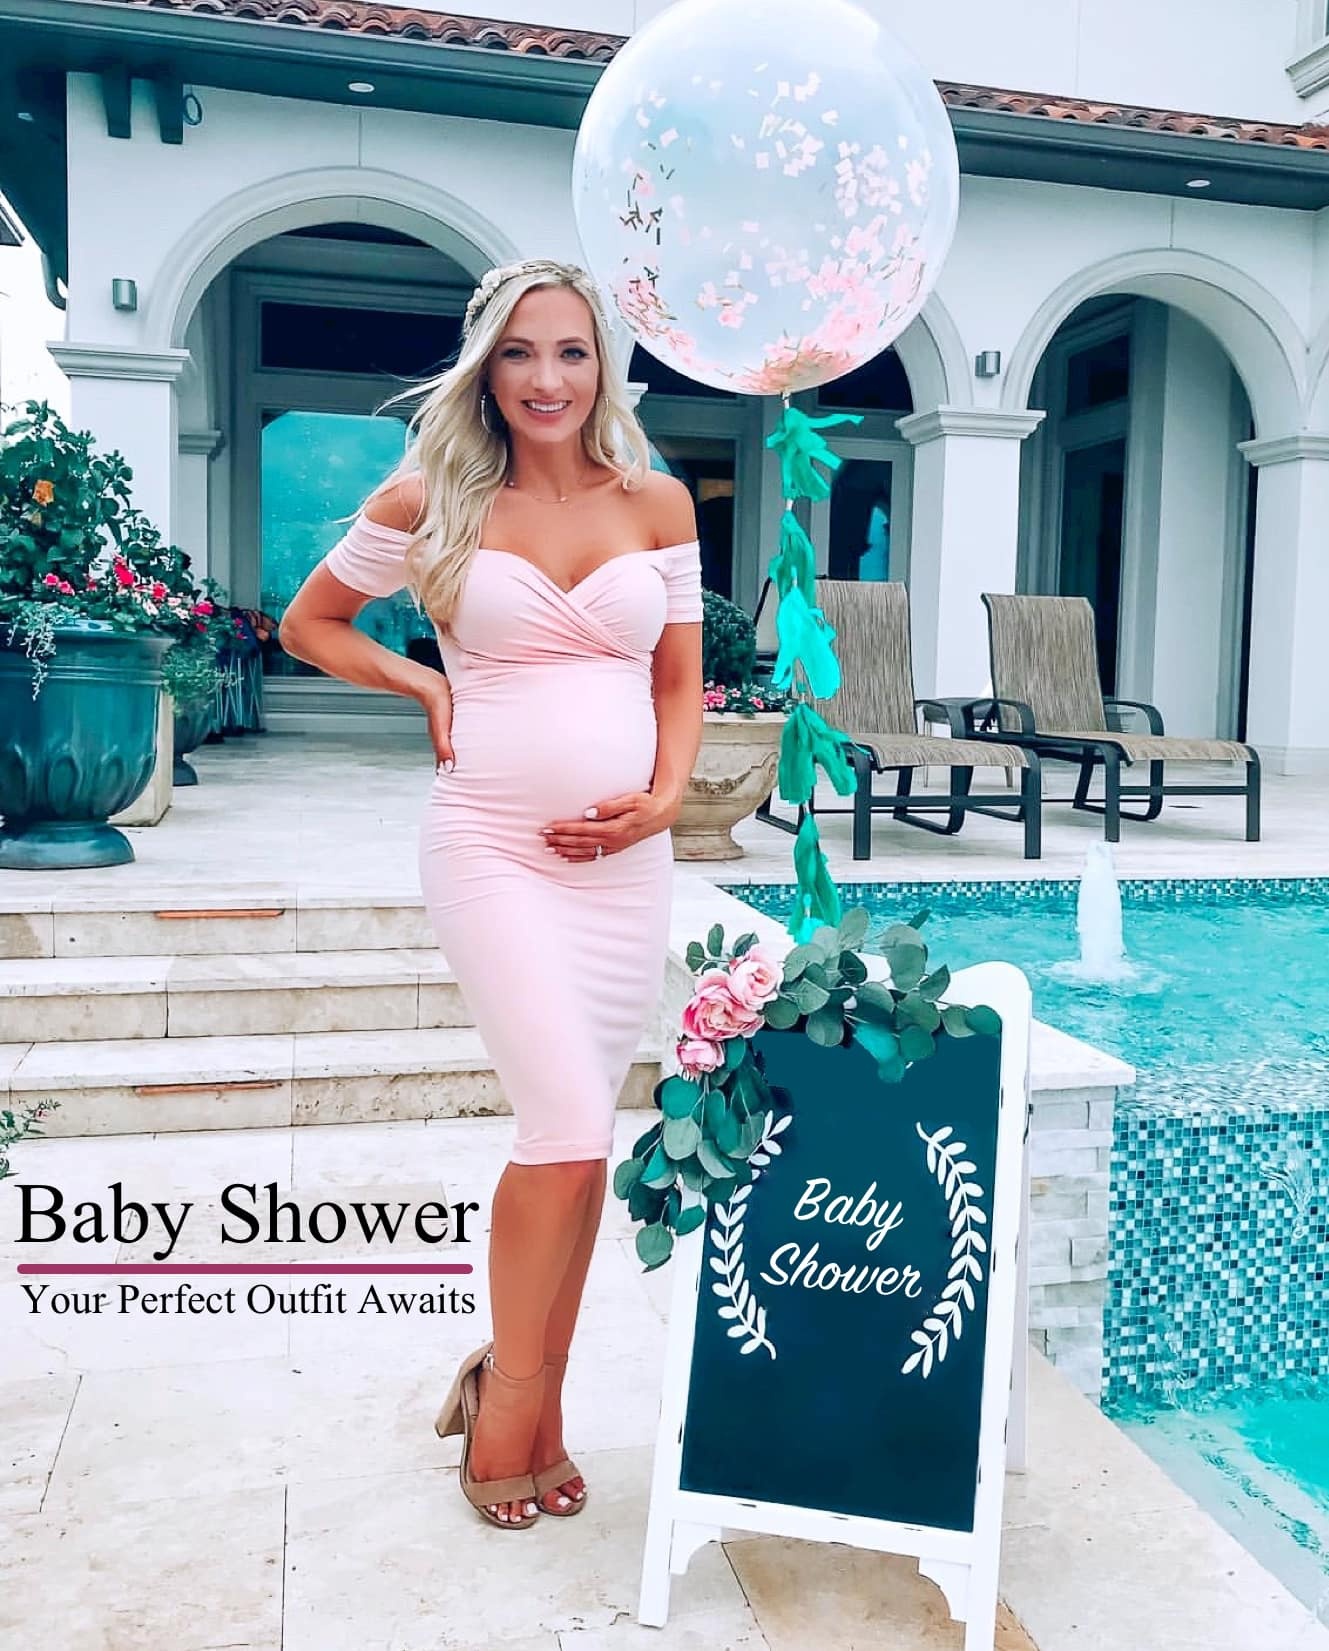 Baby Shower Outfit For Mom : shower, outfit, Maternity, #coolmom, Styles, Gowns